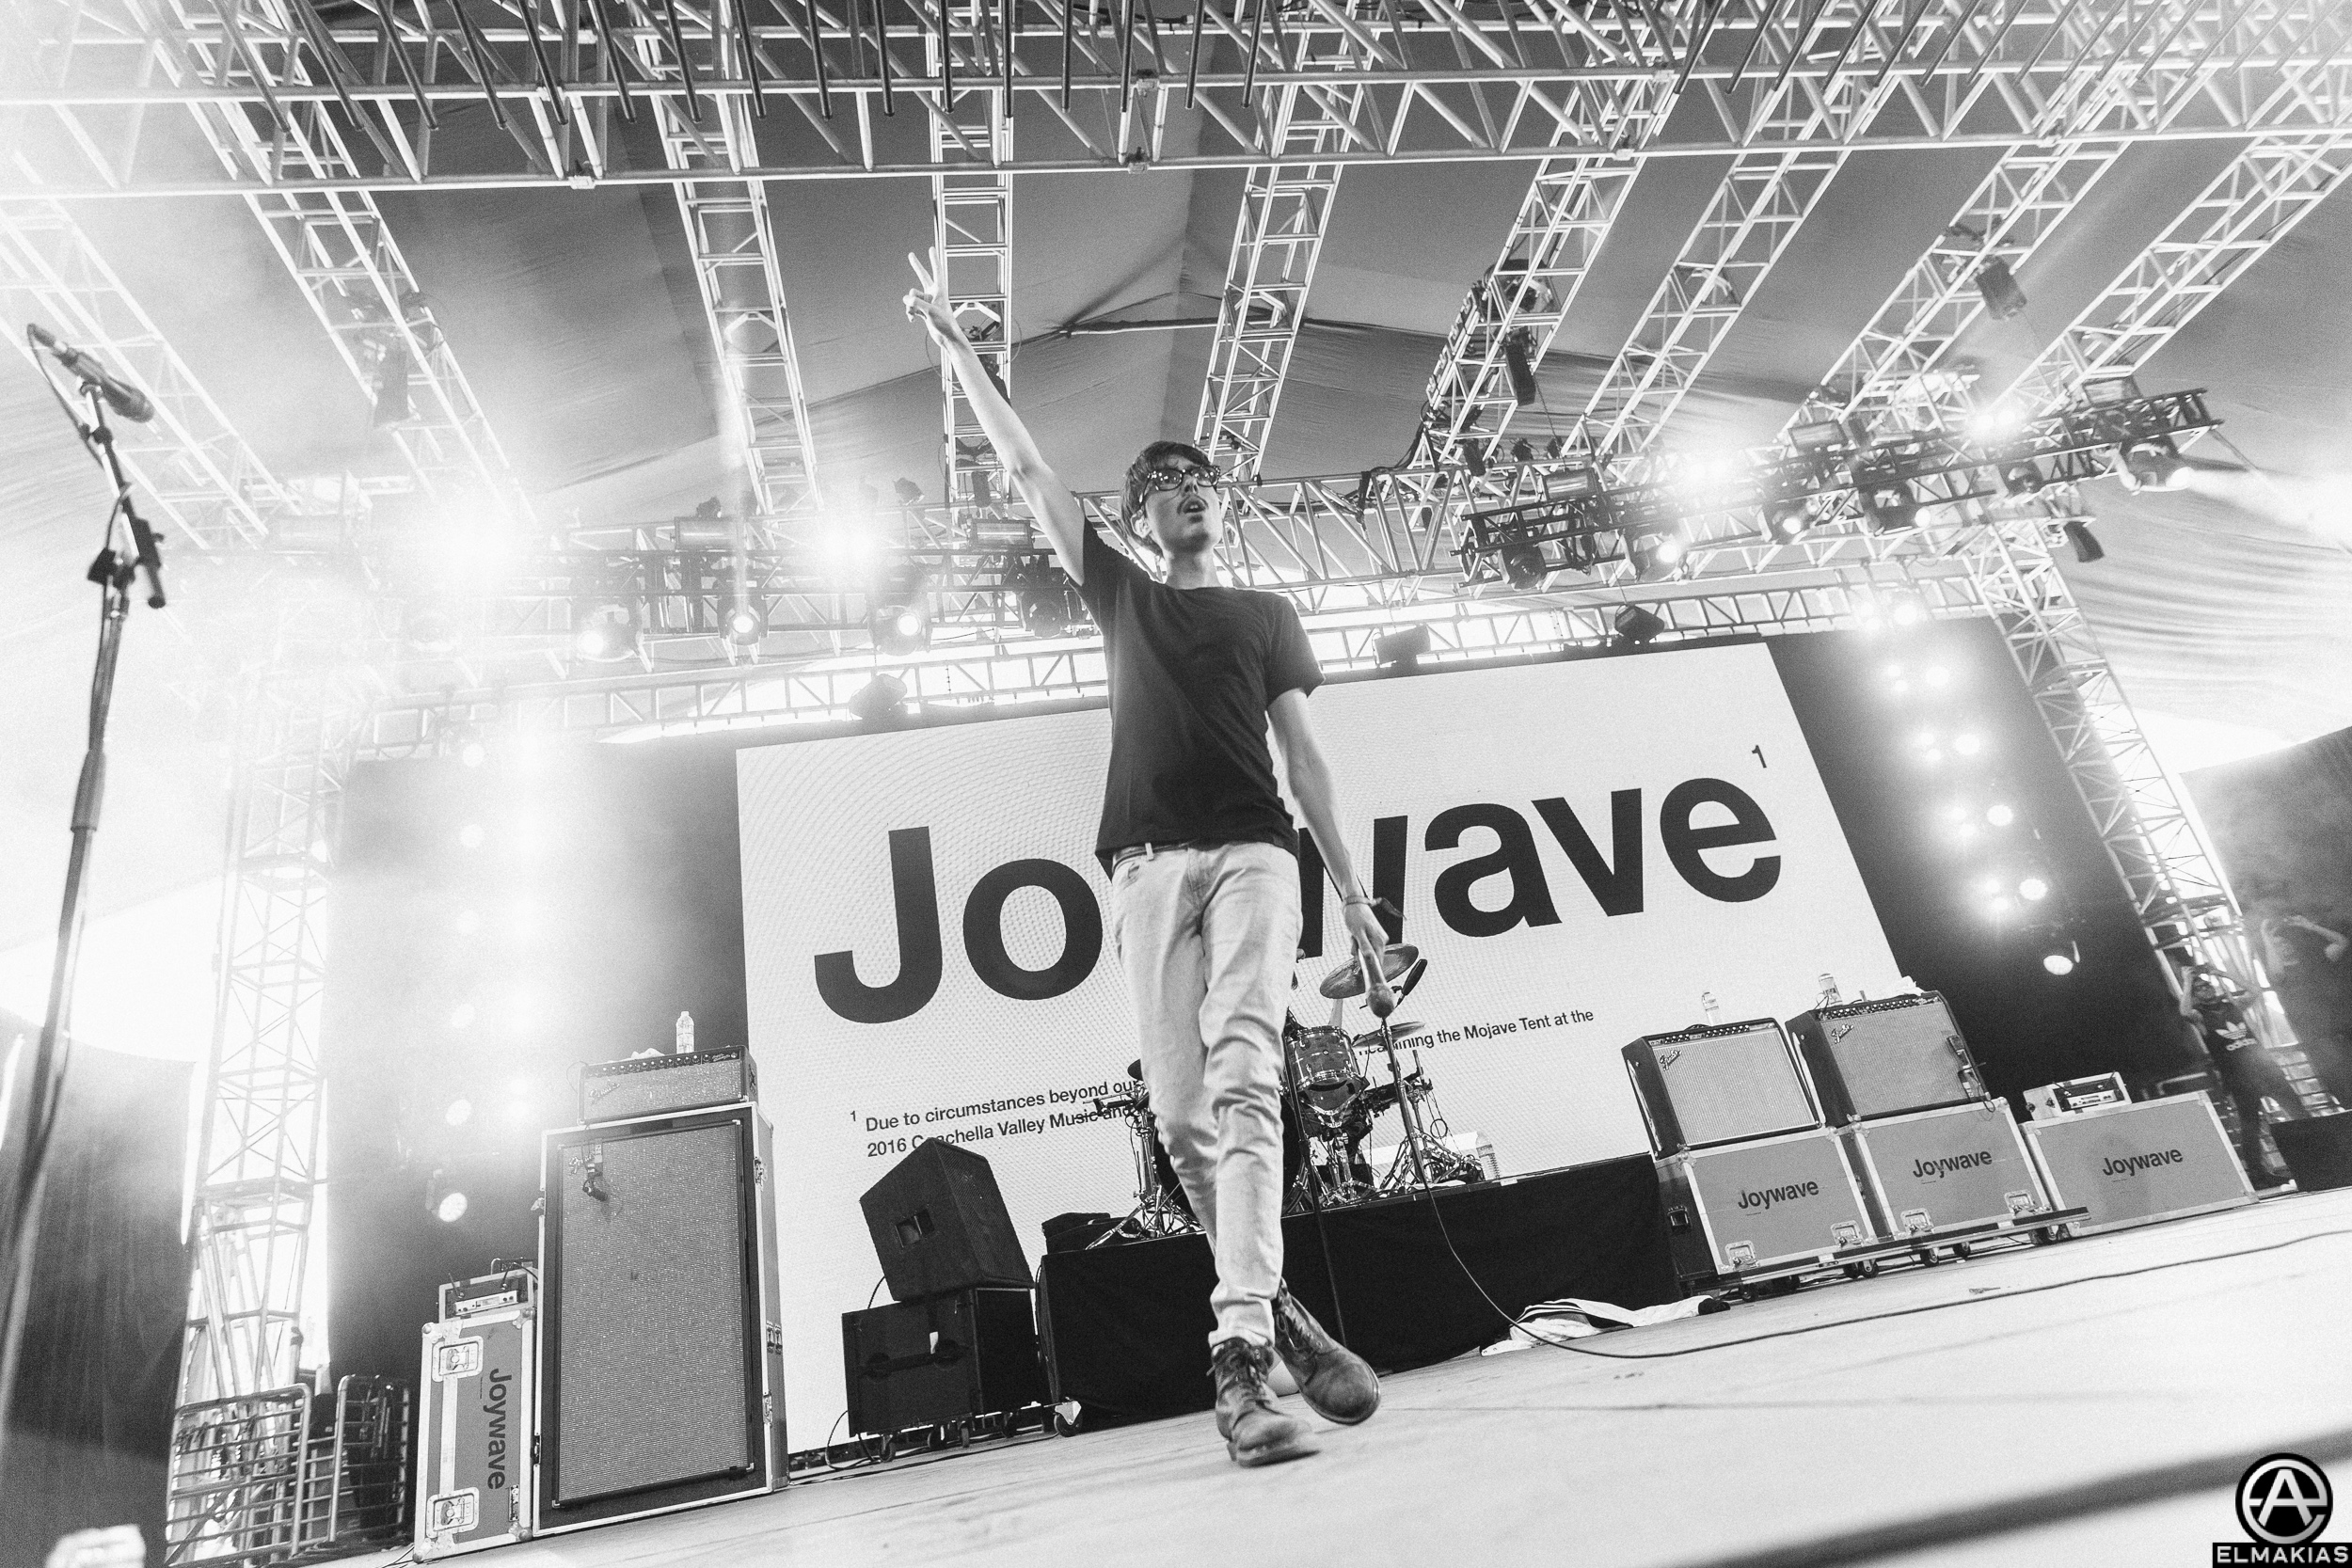 Joywave at Coachella 2016 by Adam Elmakias